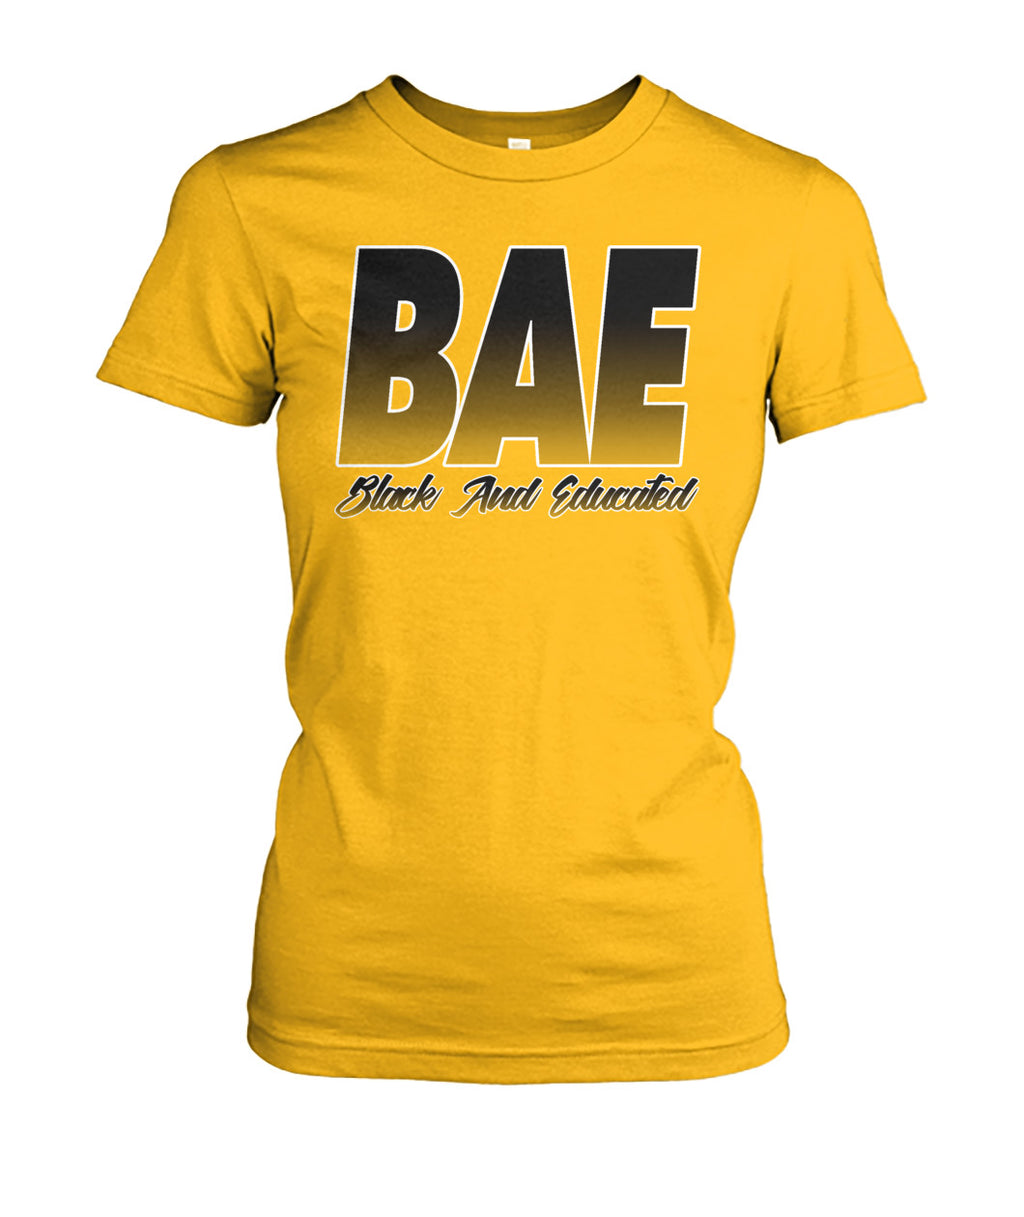 Black and Educated- Grambling Edition Women's Crew Tee